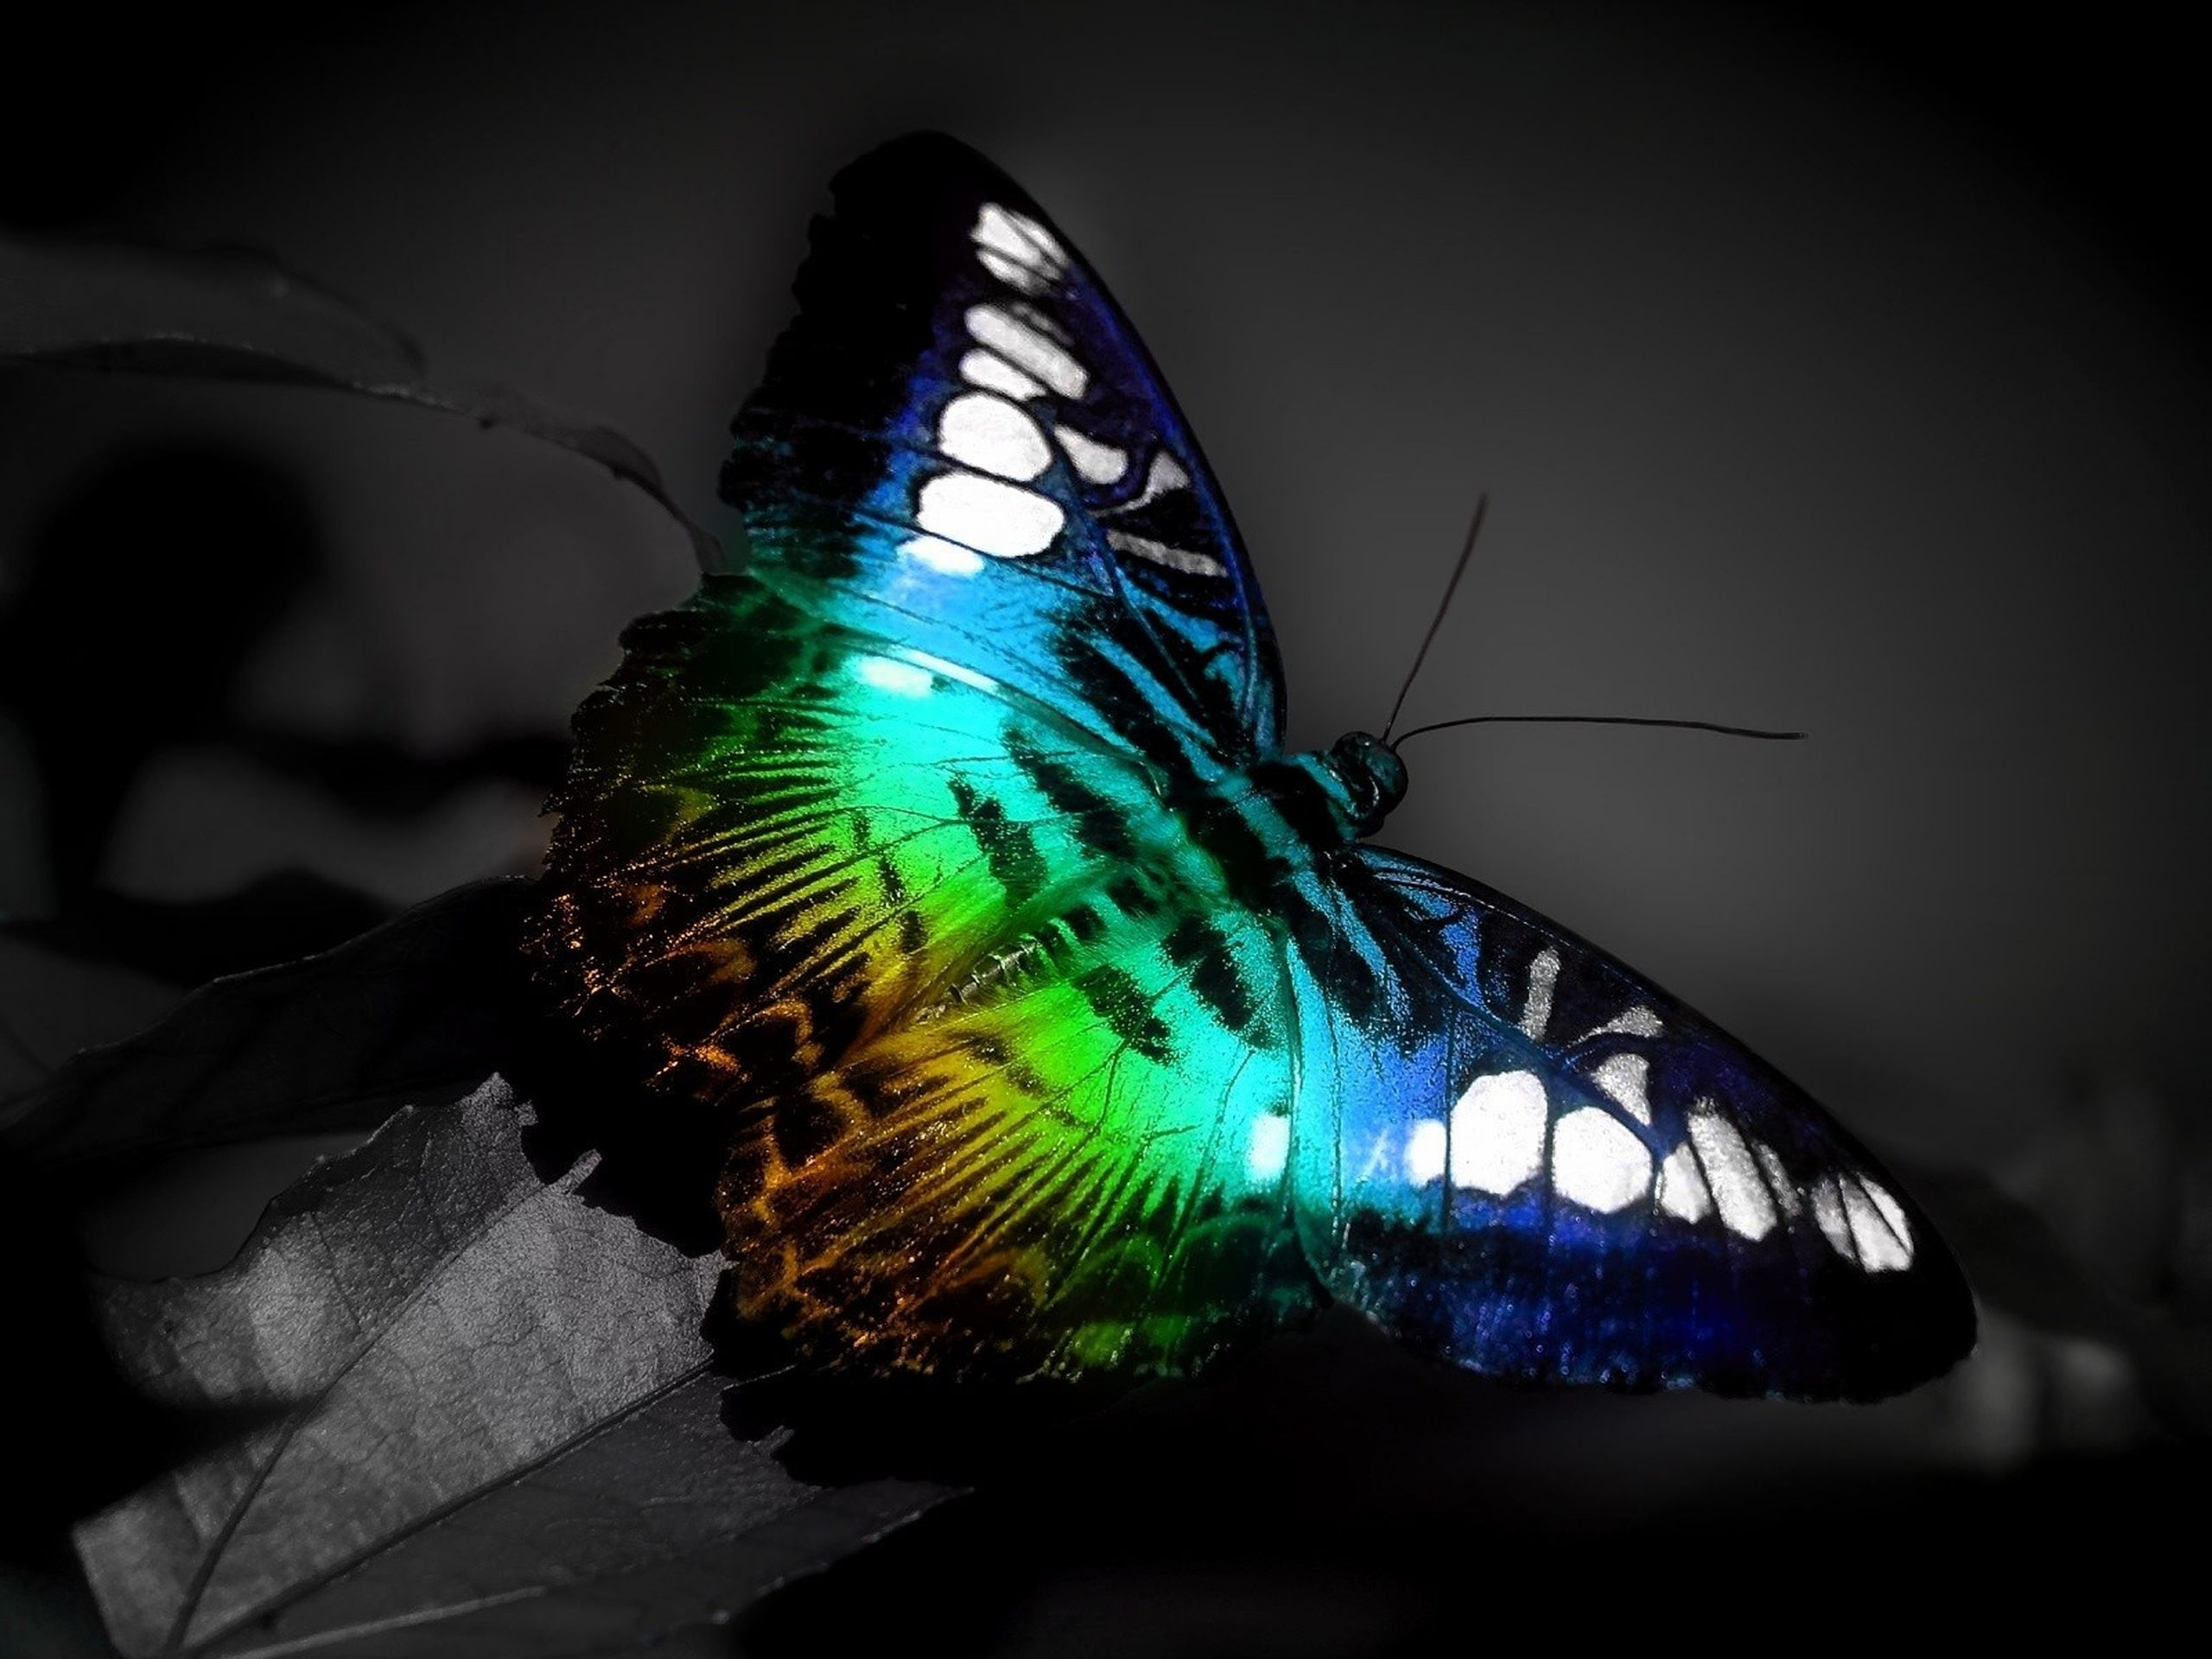 2560x1920 - Pretty Butterfly Backgrounds 40